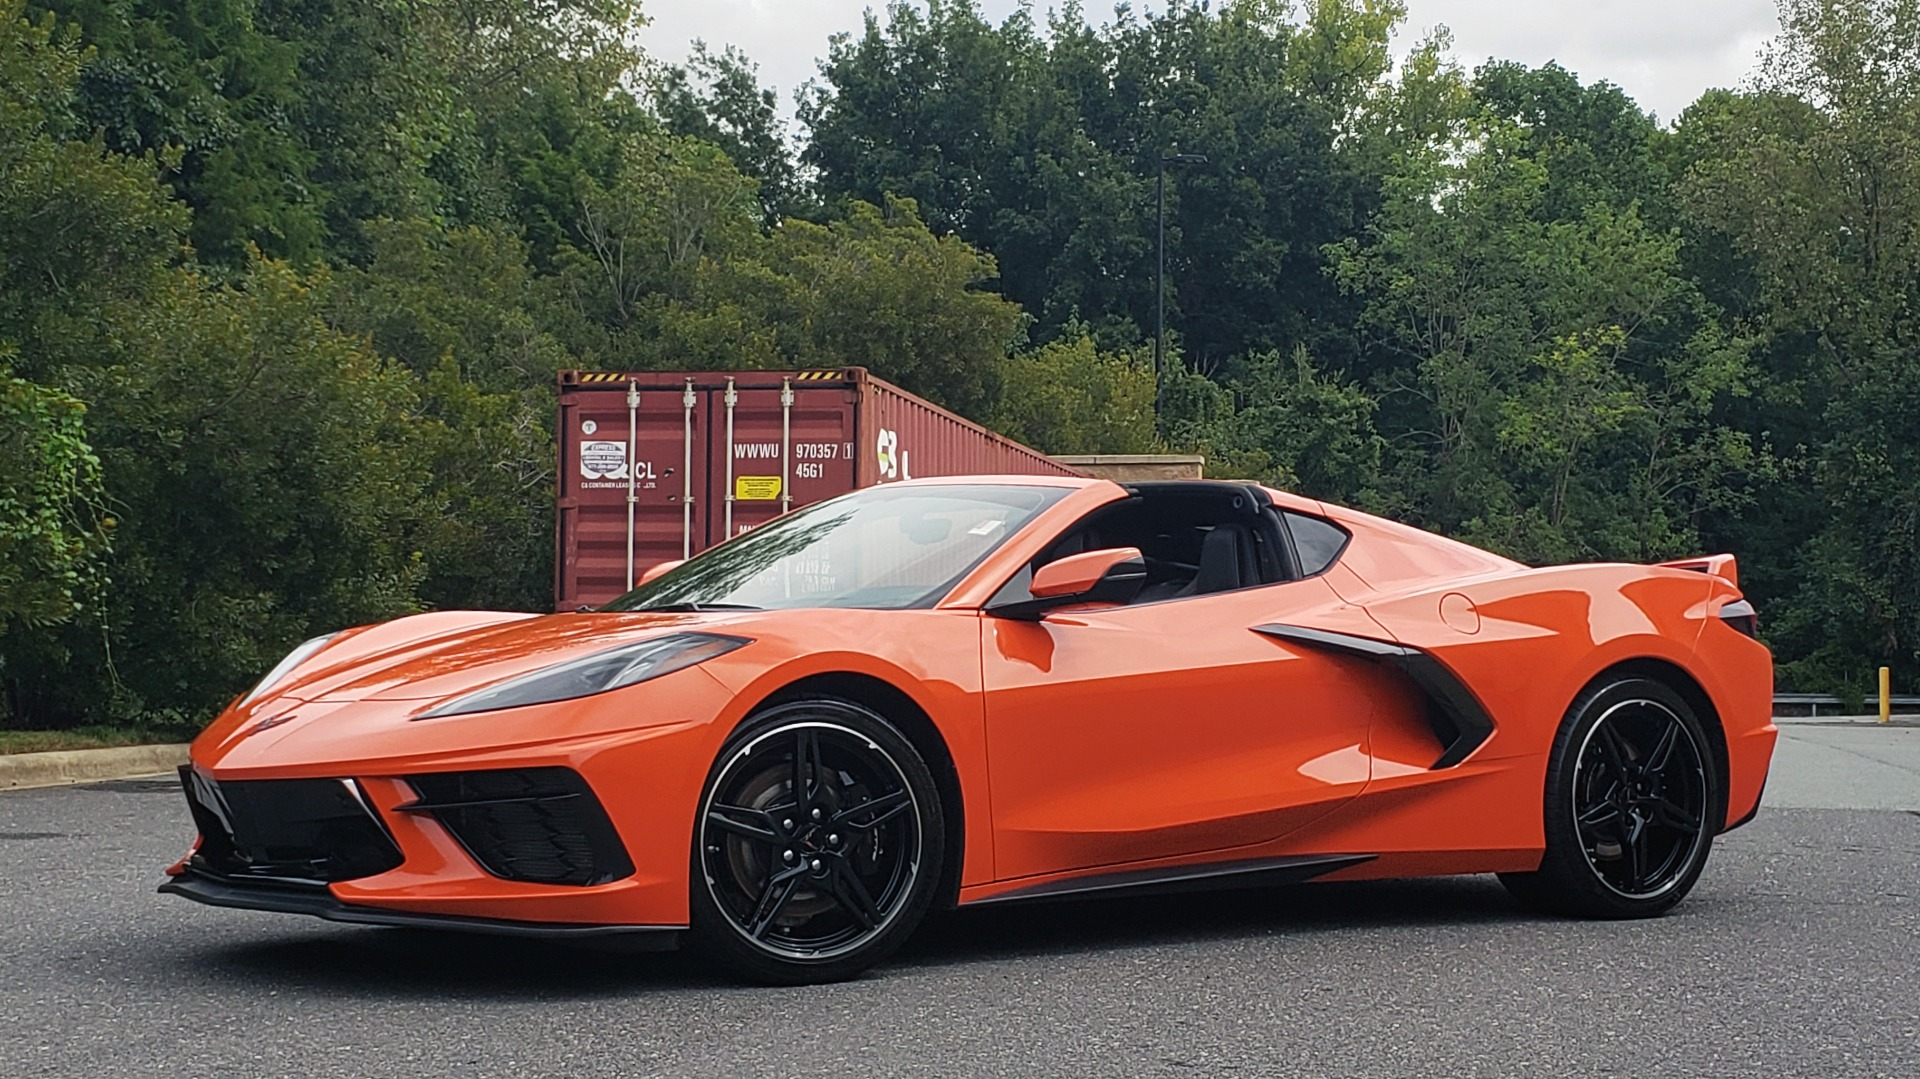 Used 2020 Chevrolet CORVETTE C8 STINGRAY 2LT / 6.2L V8 / 8-SPD AUTO / NAV / BOSE / REARVIEW / DATA RECOR for sale Sold at Formula Imports in Charlotte NC 28227 74